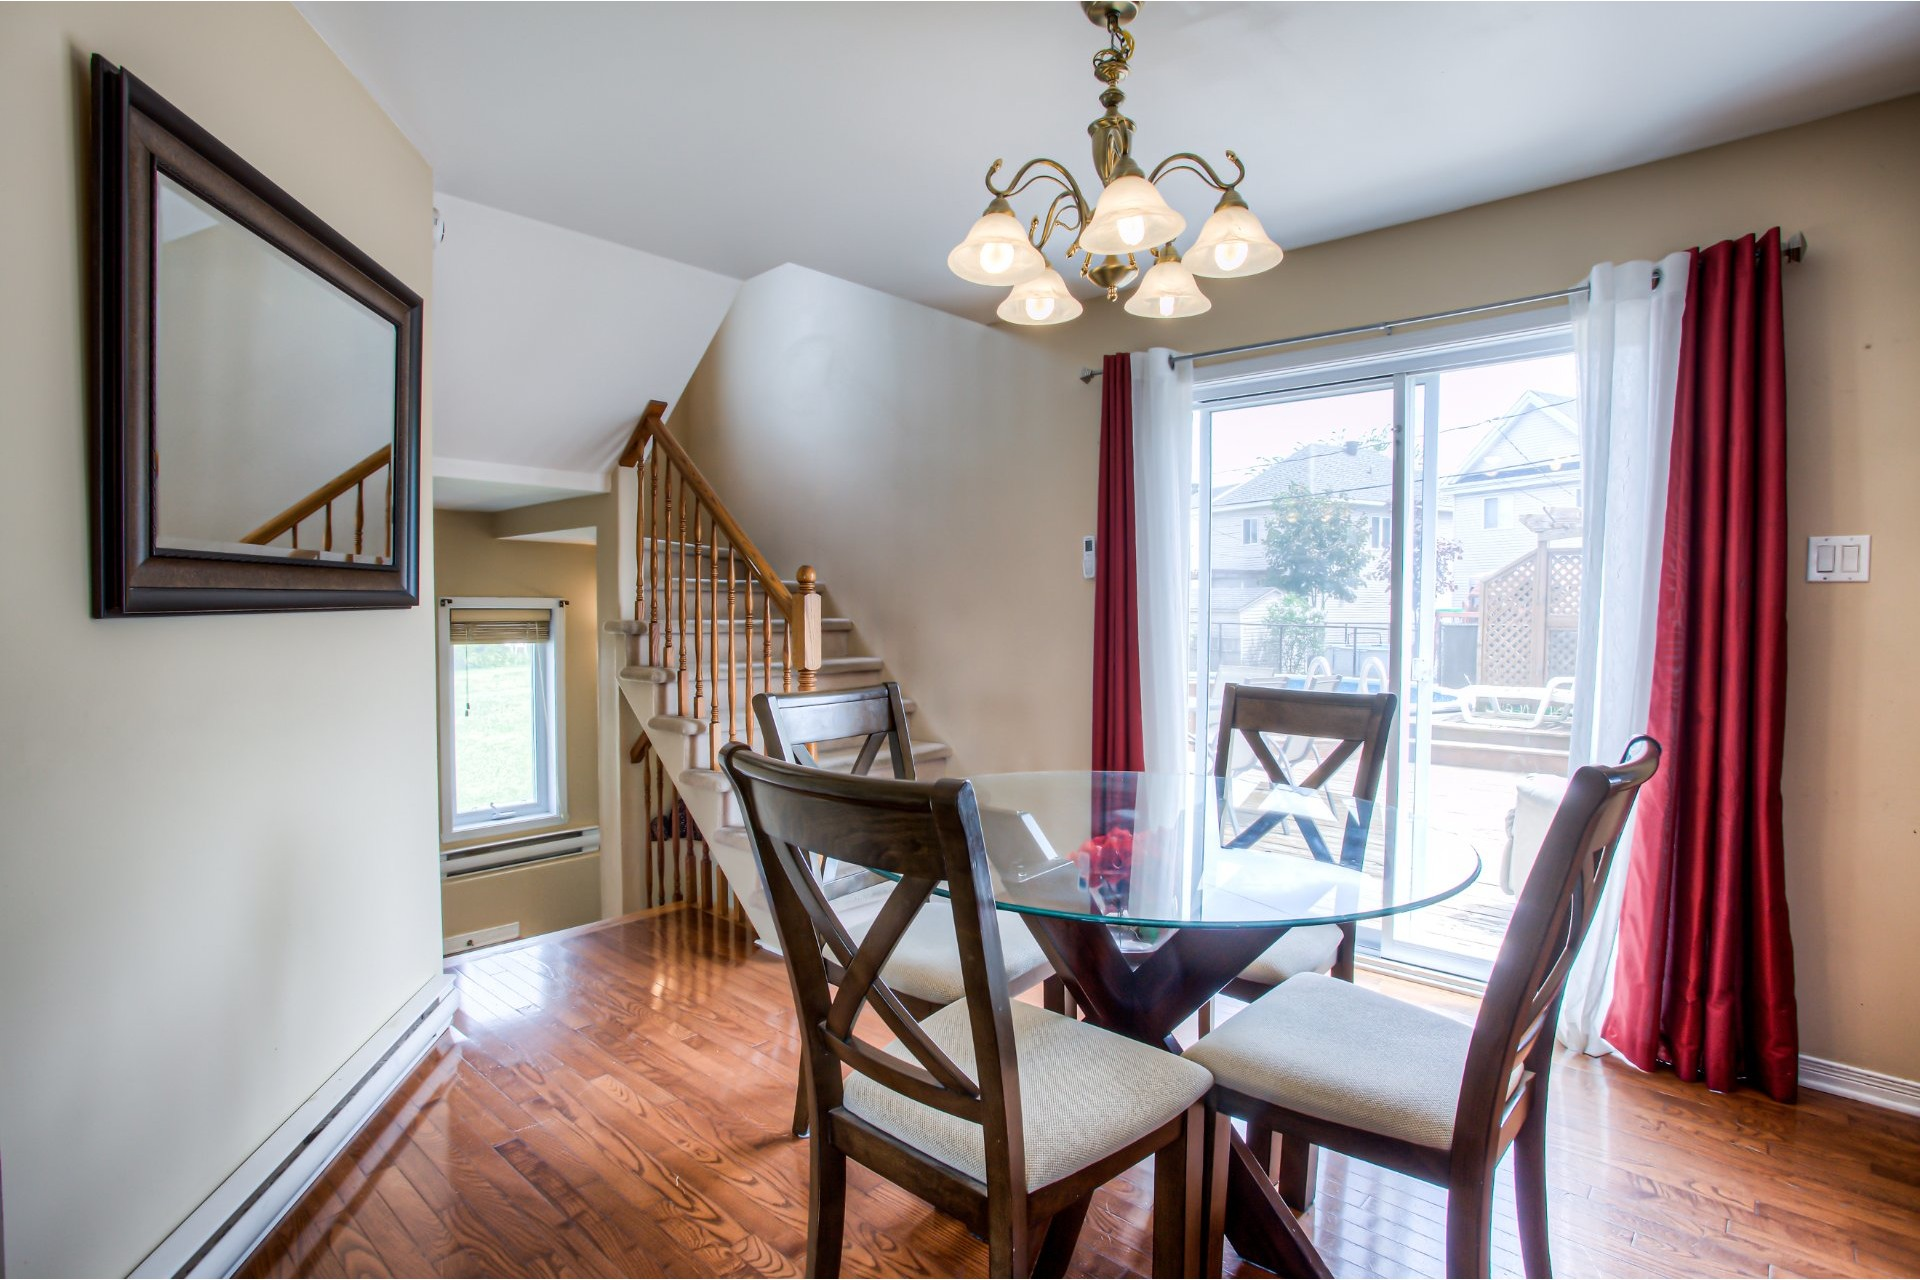 image 6 - House For sale Vaudreuil-Dorion - 7 rooms